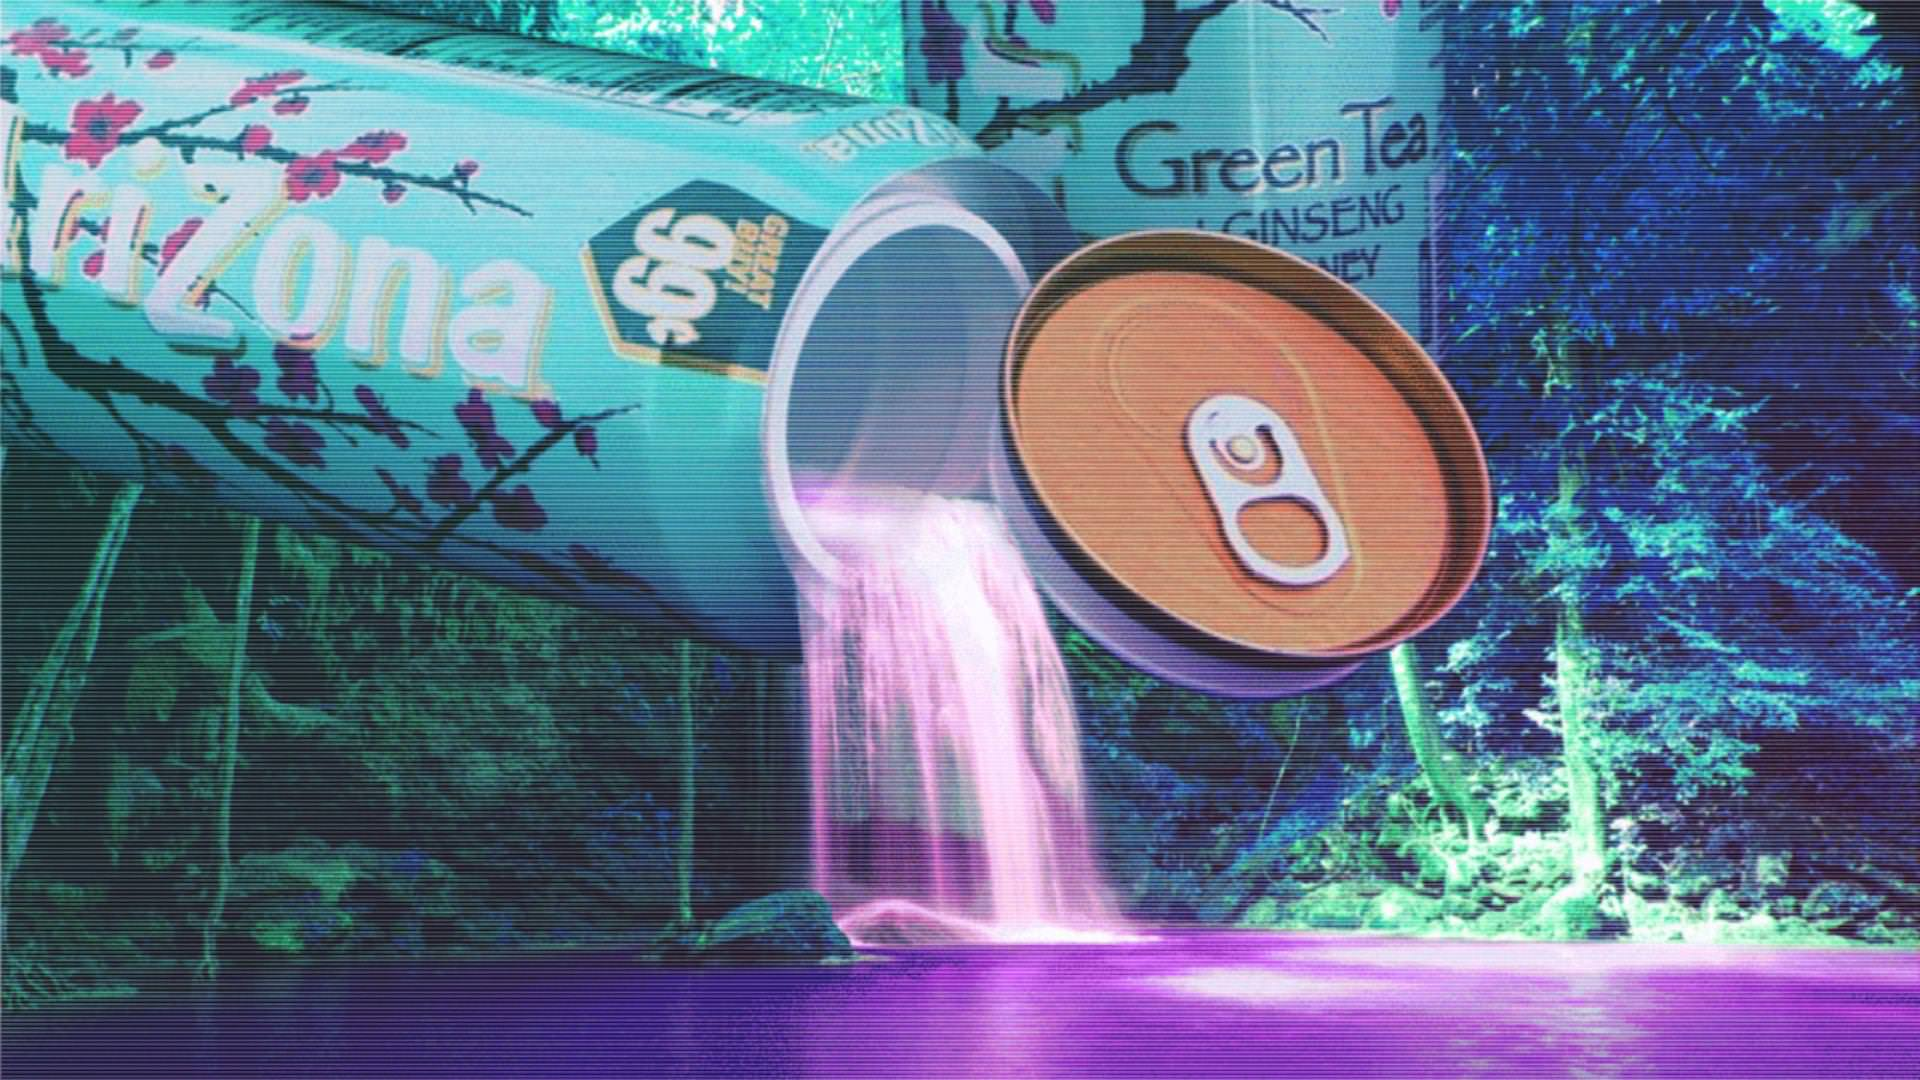 1920x1080 Static Studio Has Reached Post- Vaporwave Aesthetic | The Weekly Spoon